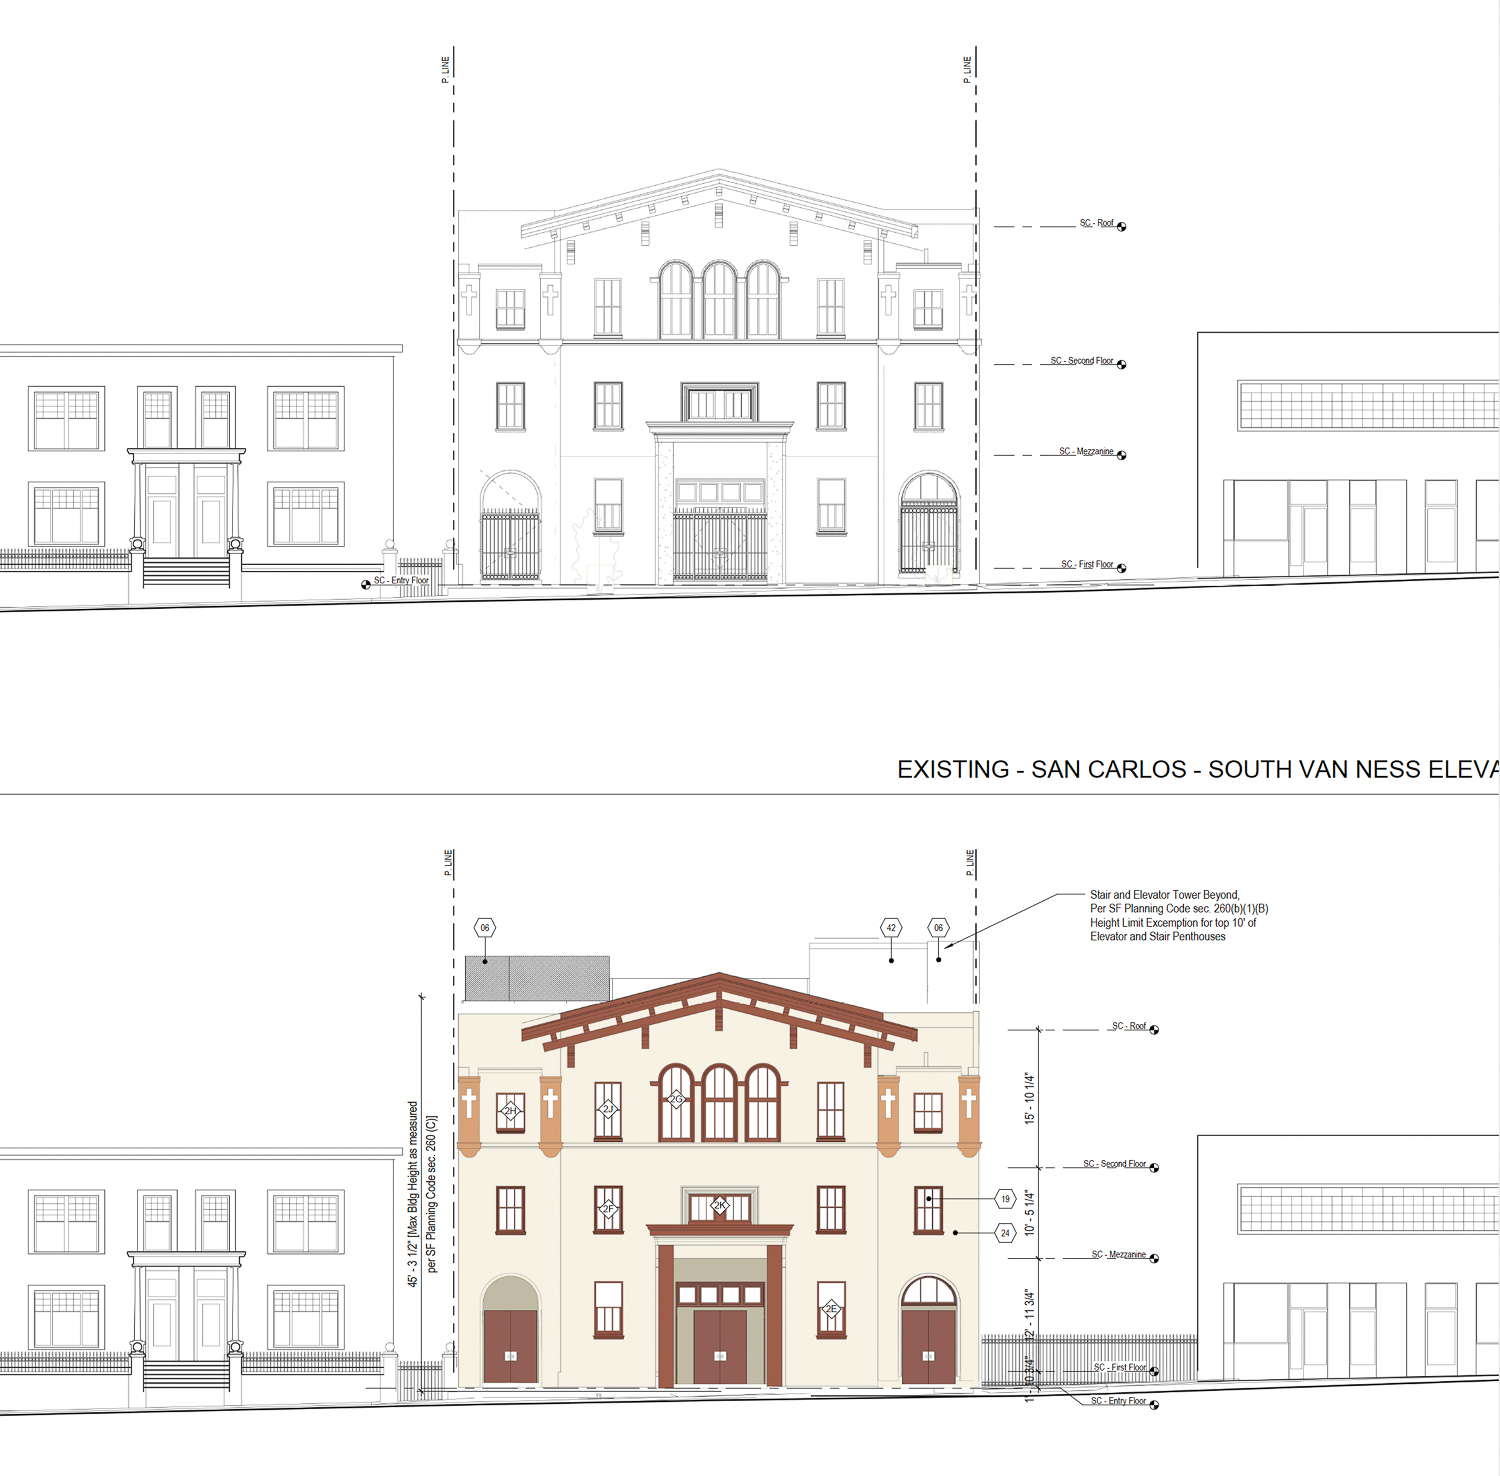 741 South Van Ness existing facade (top) and proposed refurbishing (bottom), Perkins&Will and ZPZ Partners